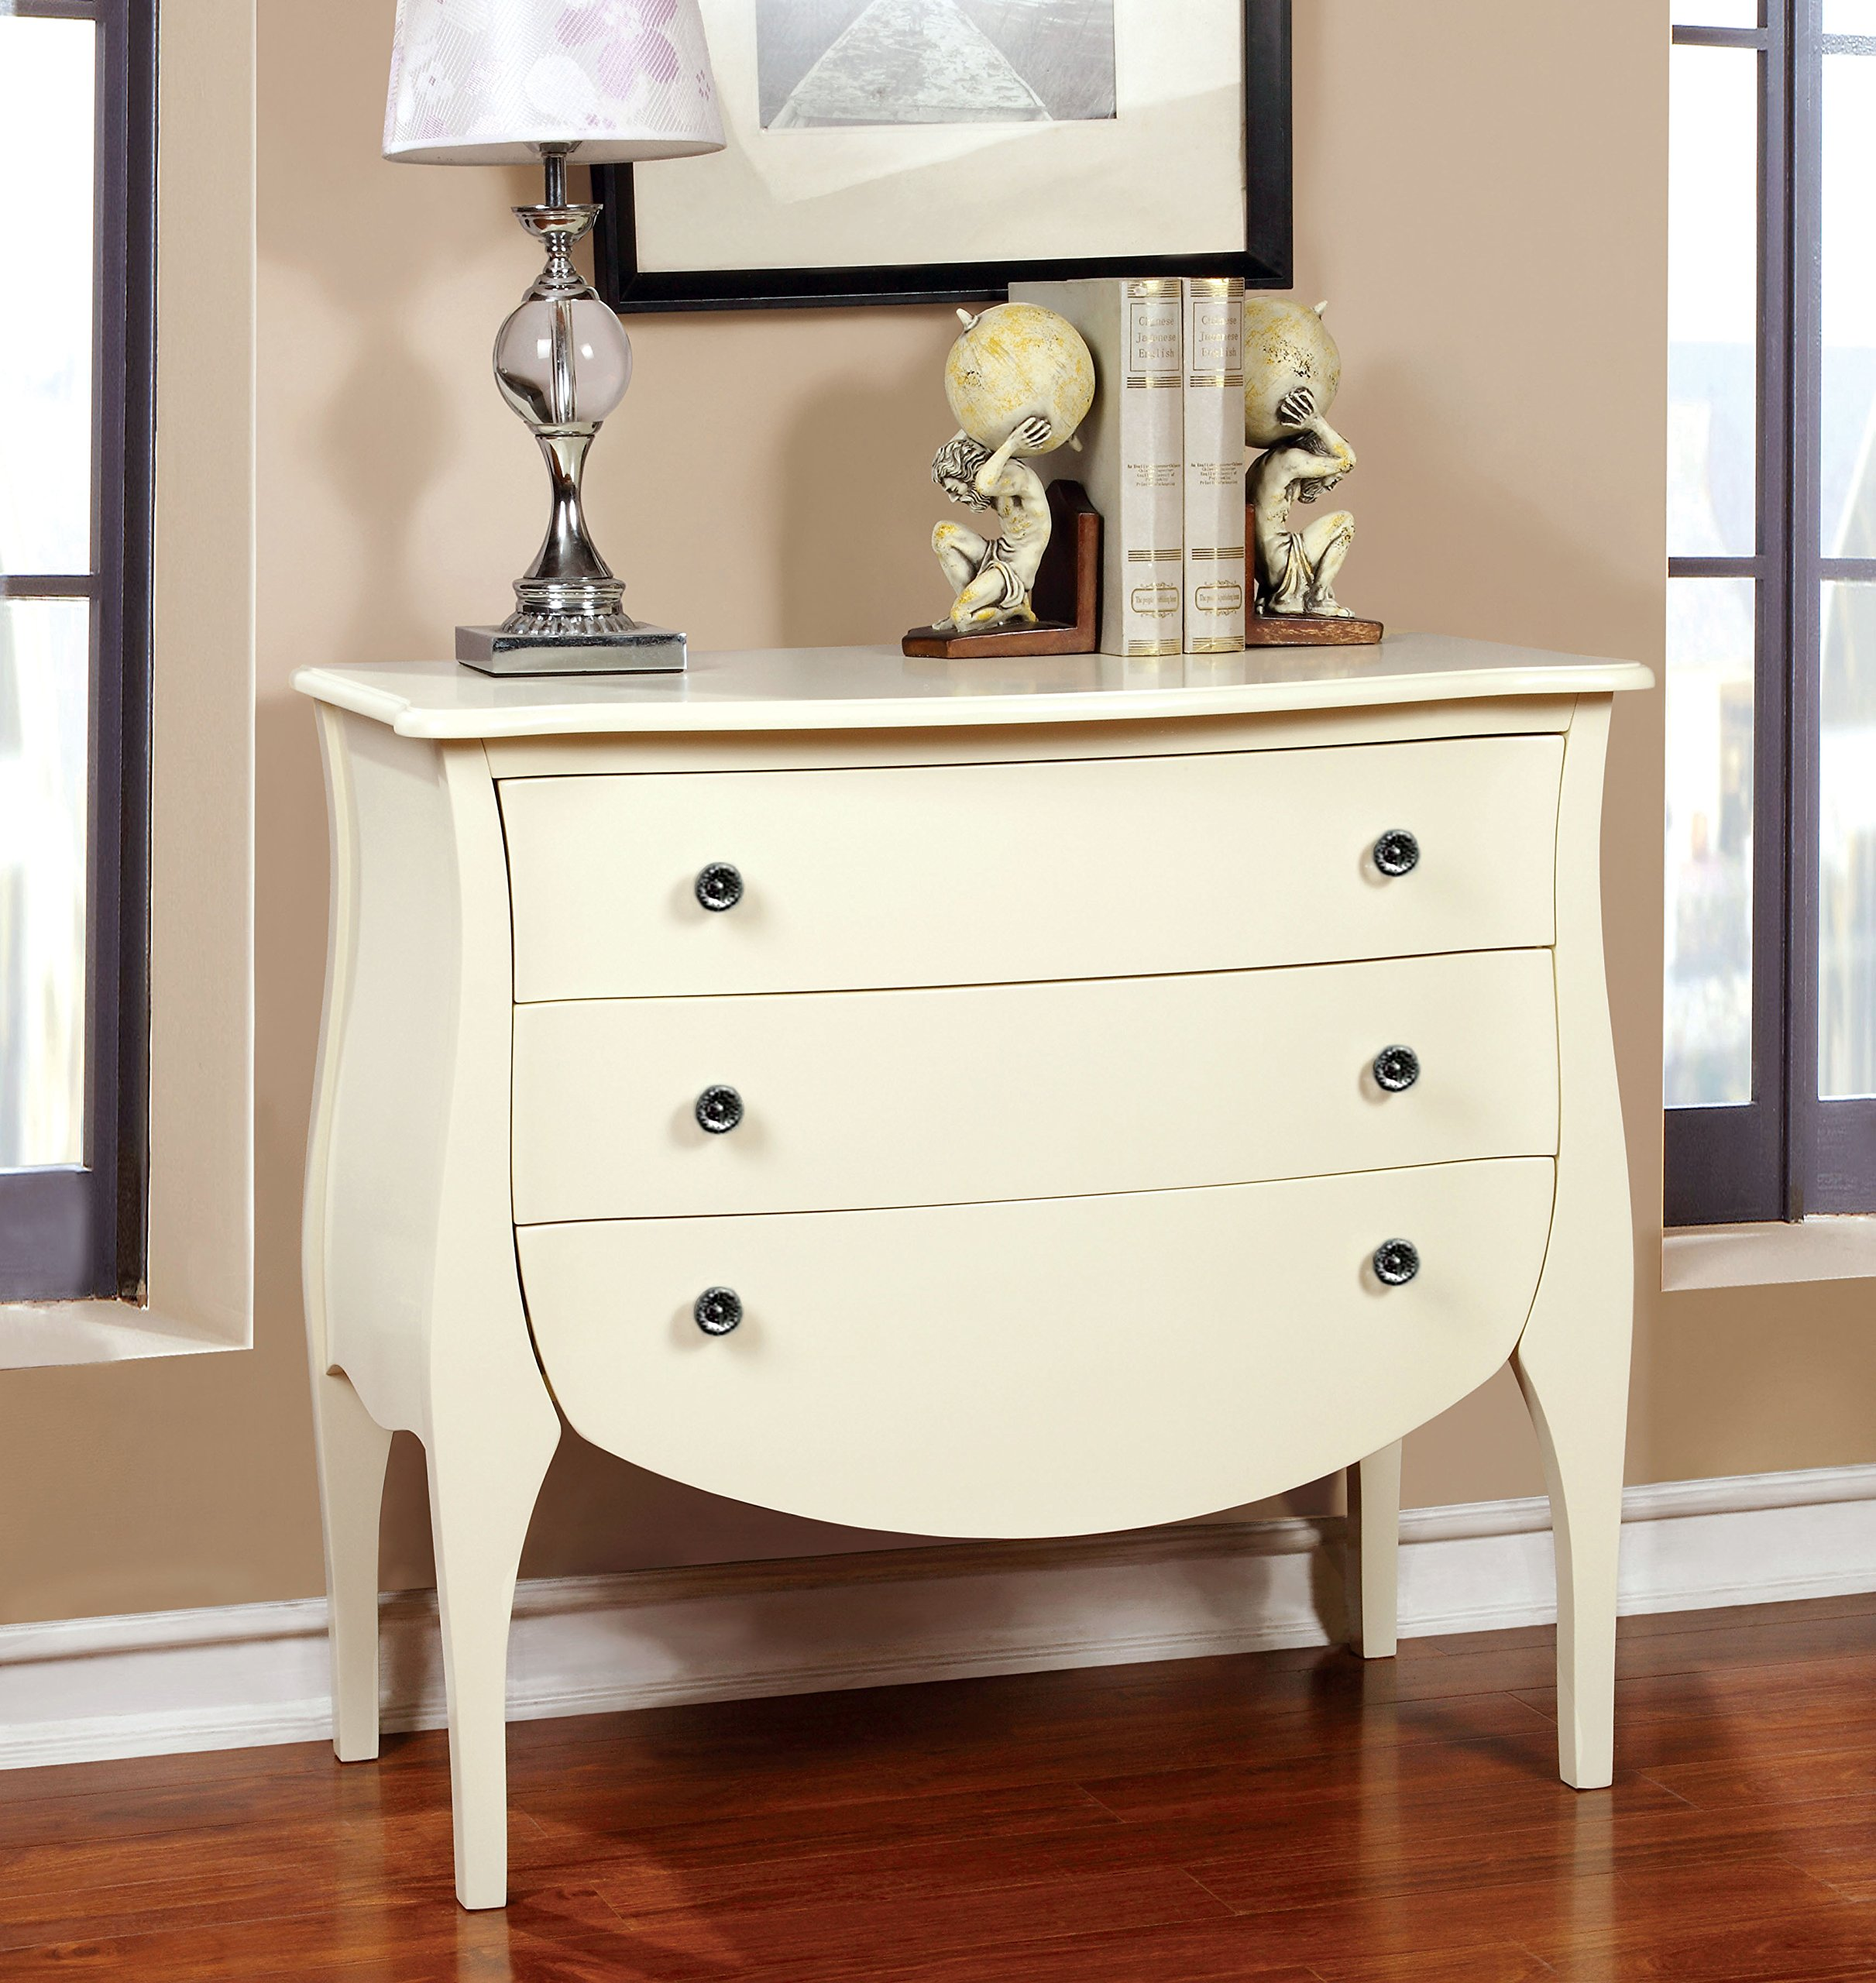 Furniture of America Delphine French Country Storage Chest, White